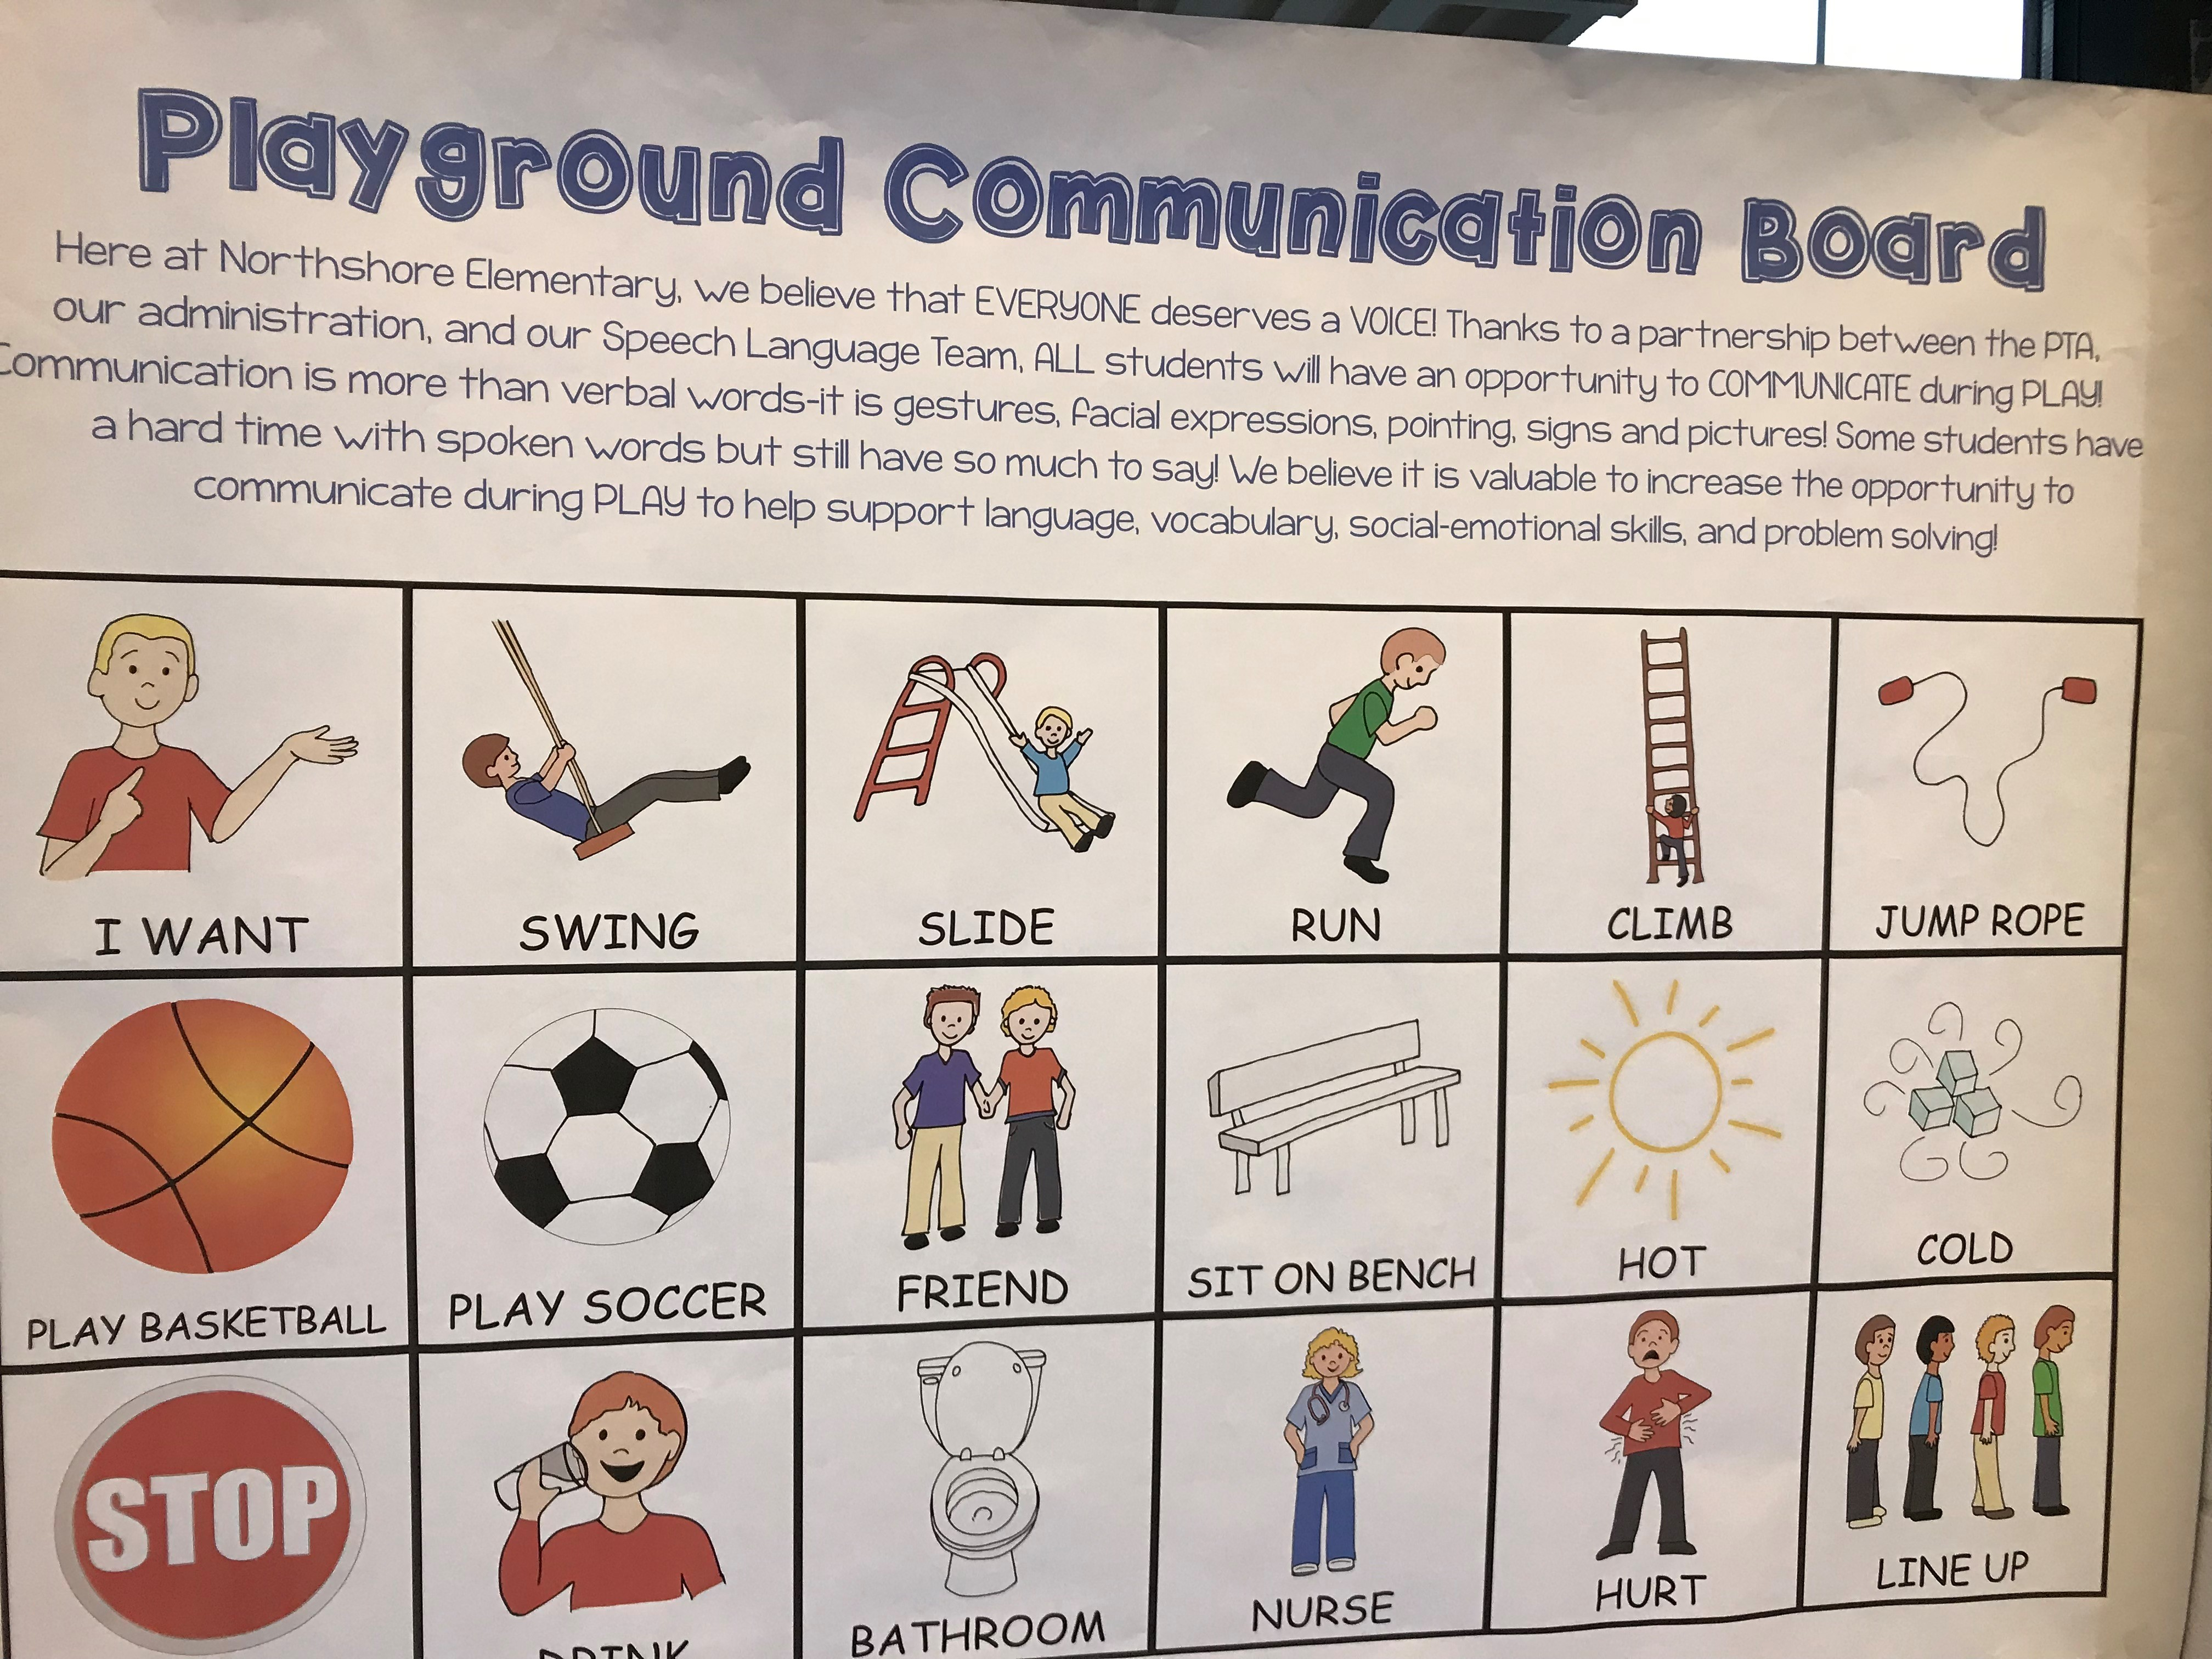 A mock-up of Northshore Elementary's new Playground Communication Board was on display inside the school on Wednesday, highlighting a variety of visual cues that will be included.